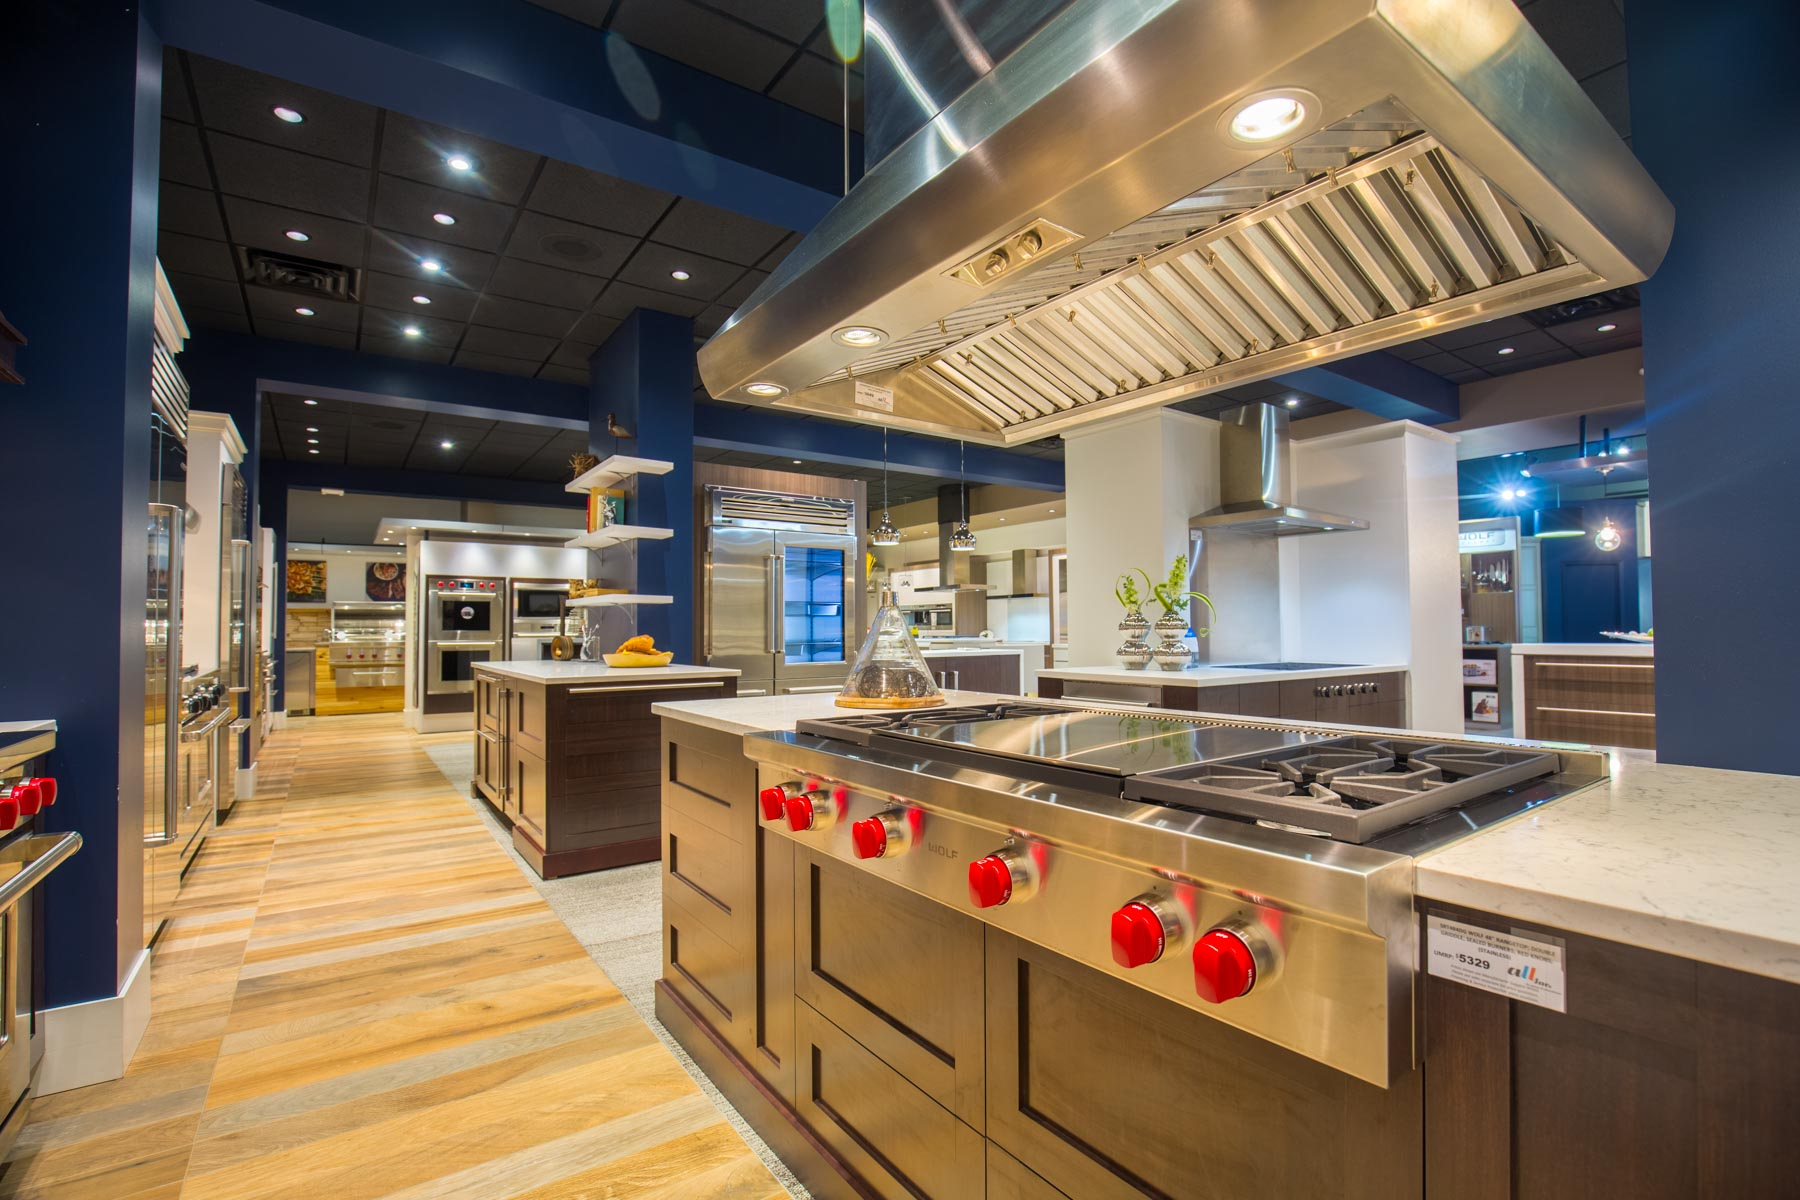 The Midwest's Largest Appliance & Cabinet Showroom | ALL, Inc.